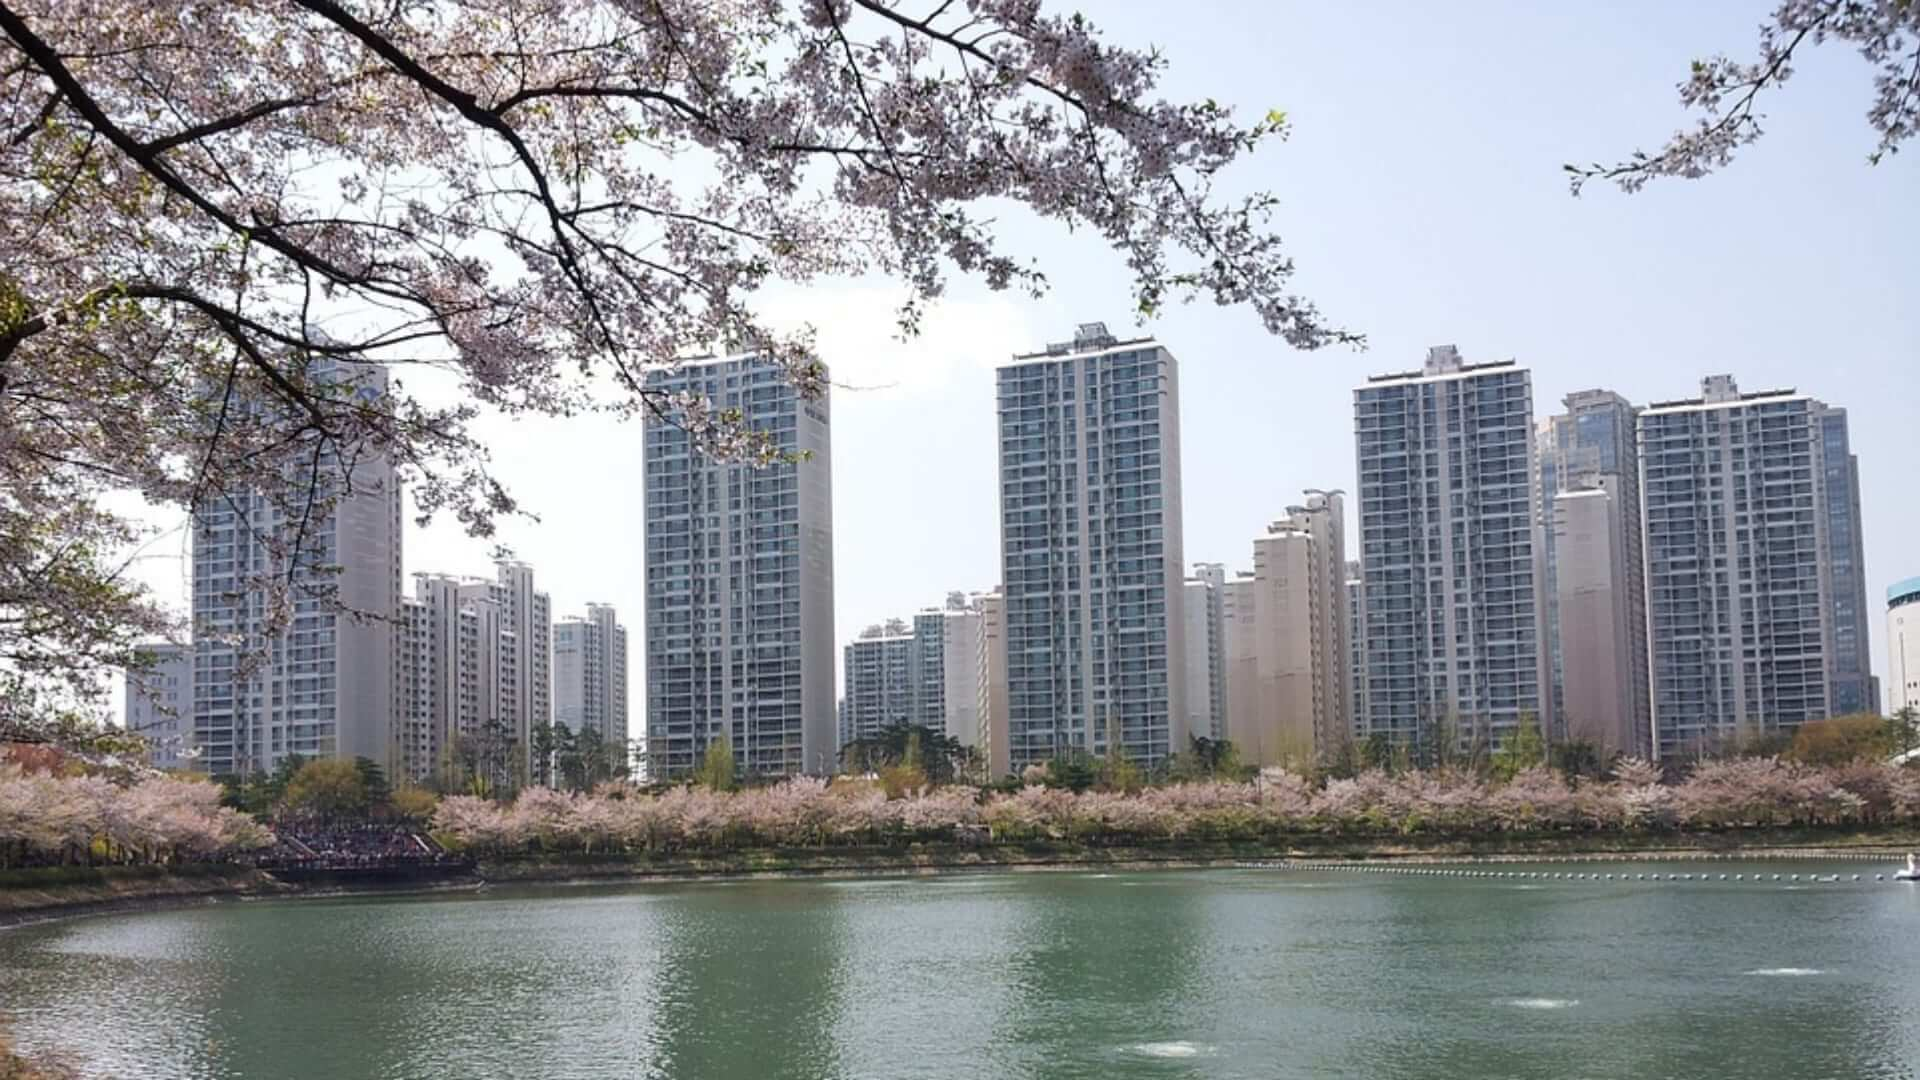 A lake in Seoul with high buildings and a cherry blossom tree next to it in South-Korea.